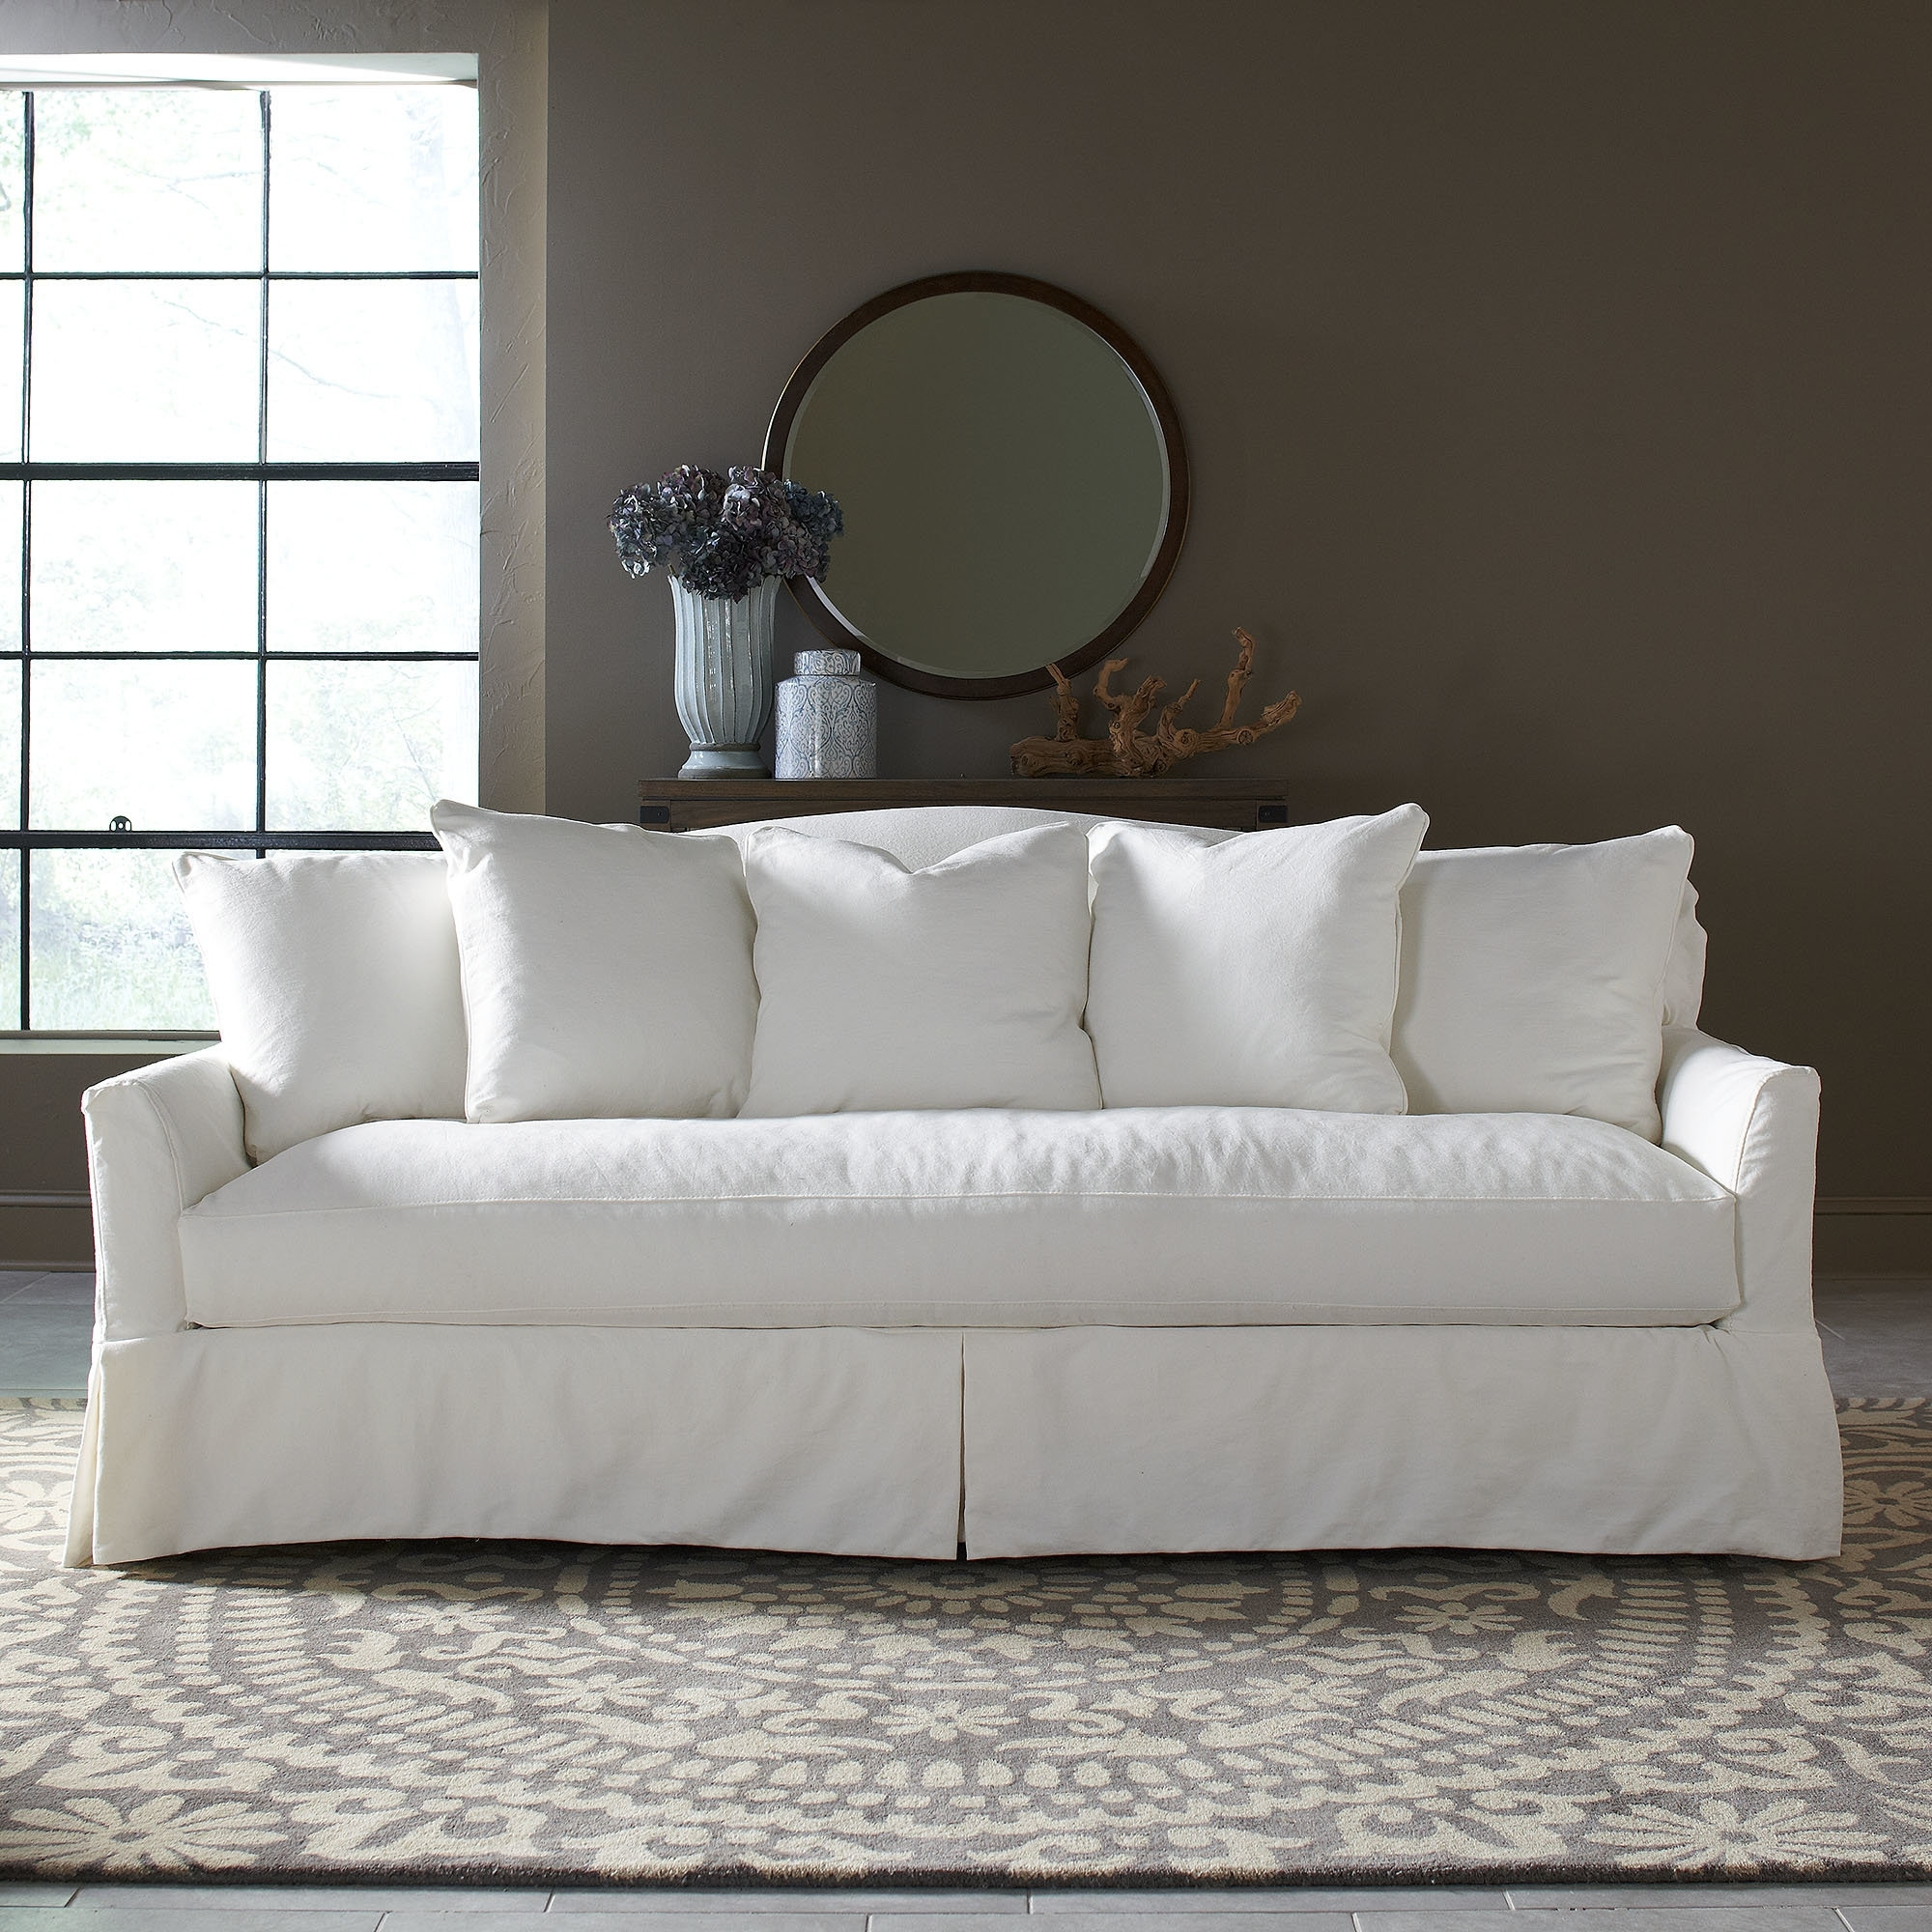 Wayfair Regarding Sofas With Removable Covers (View 18 of 20)